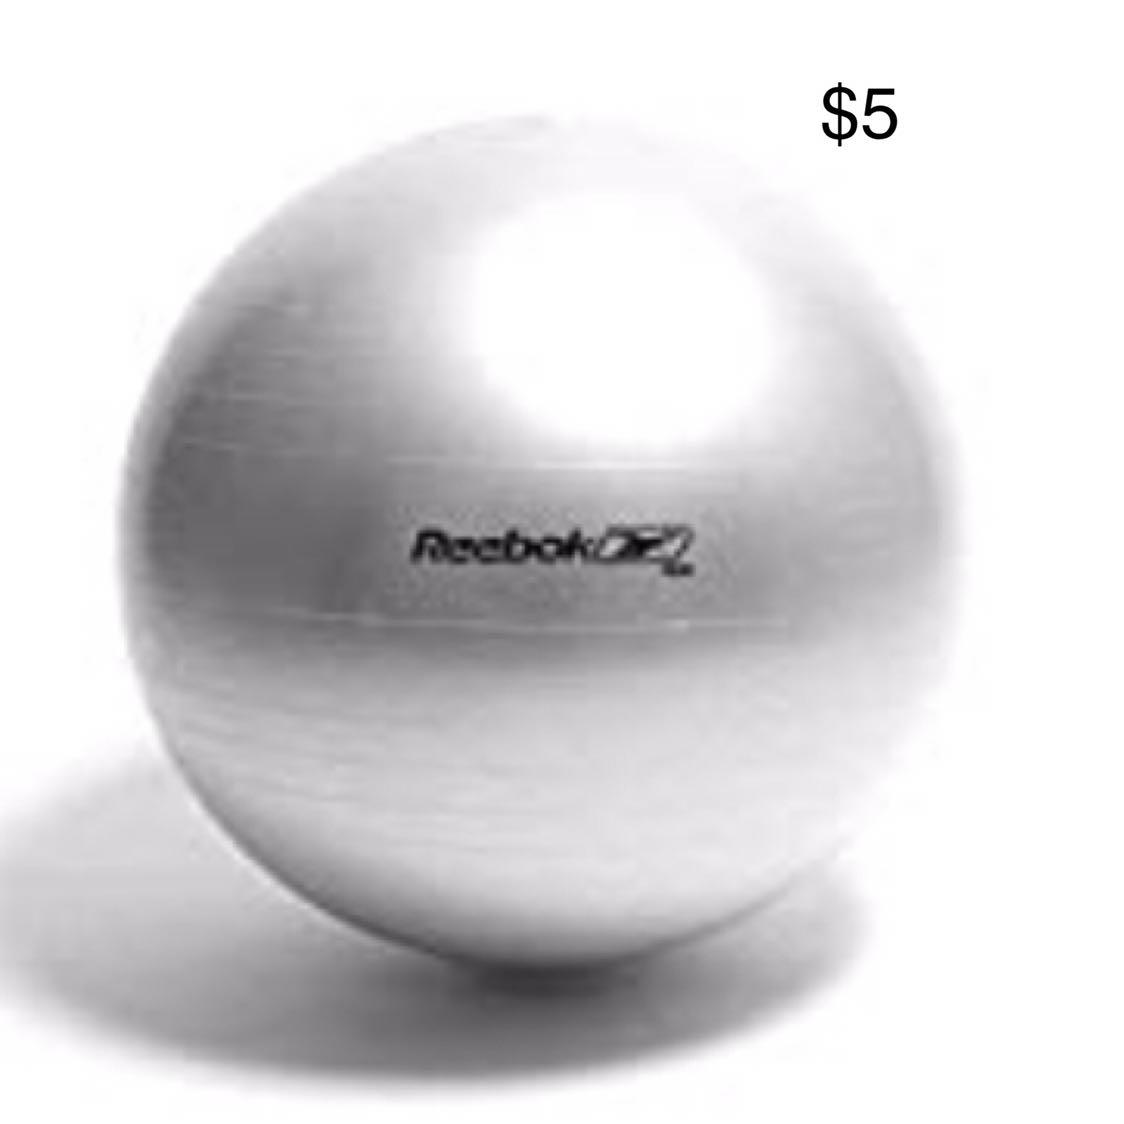 REEBOK Large Gym Ball (Silver)